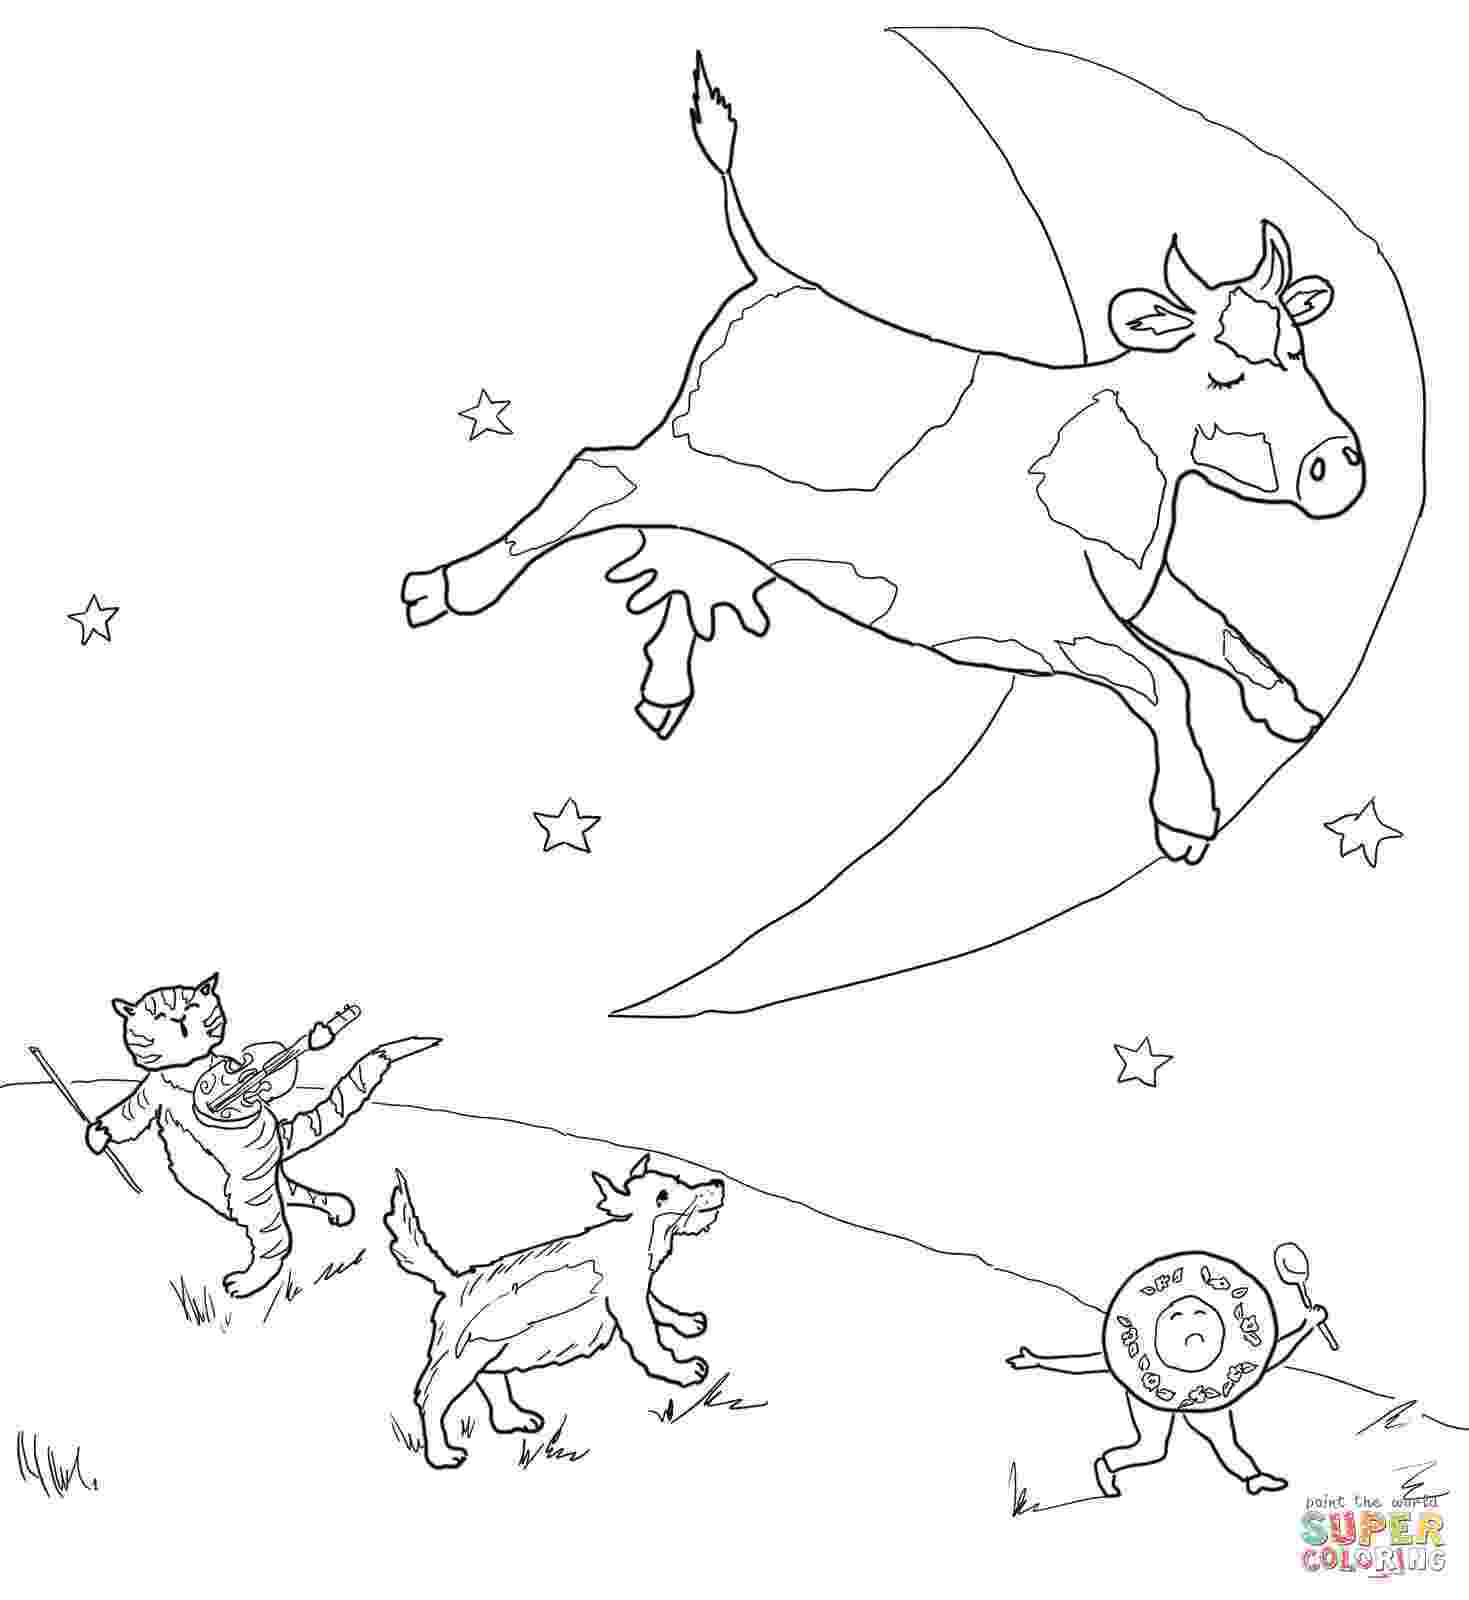 sylvester and the magic pebble coloring page sylvester and the magic pebble printables freebie by page the magic and coloring sylvester pebble